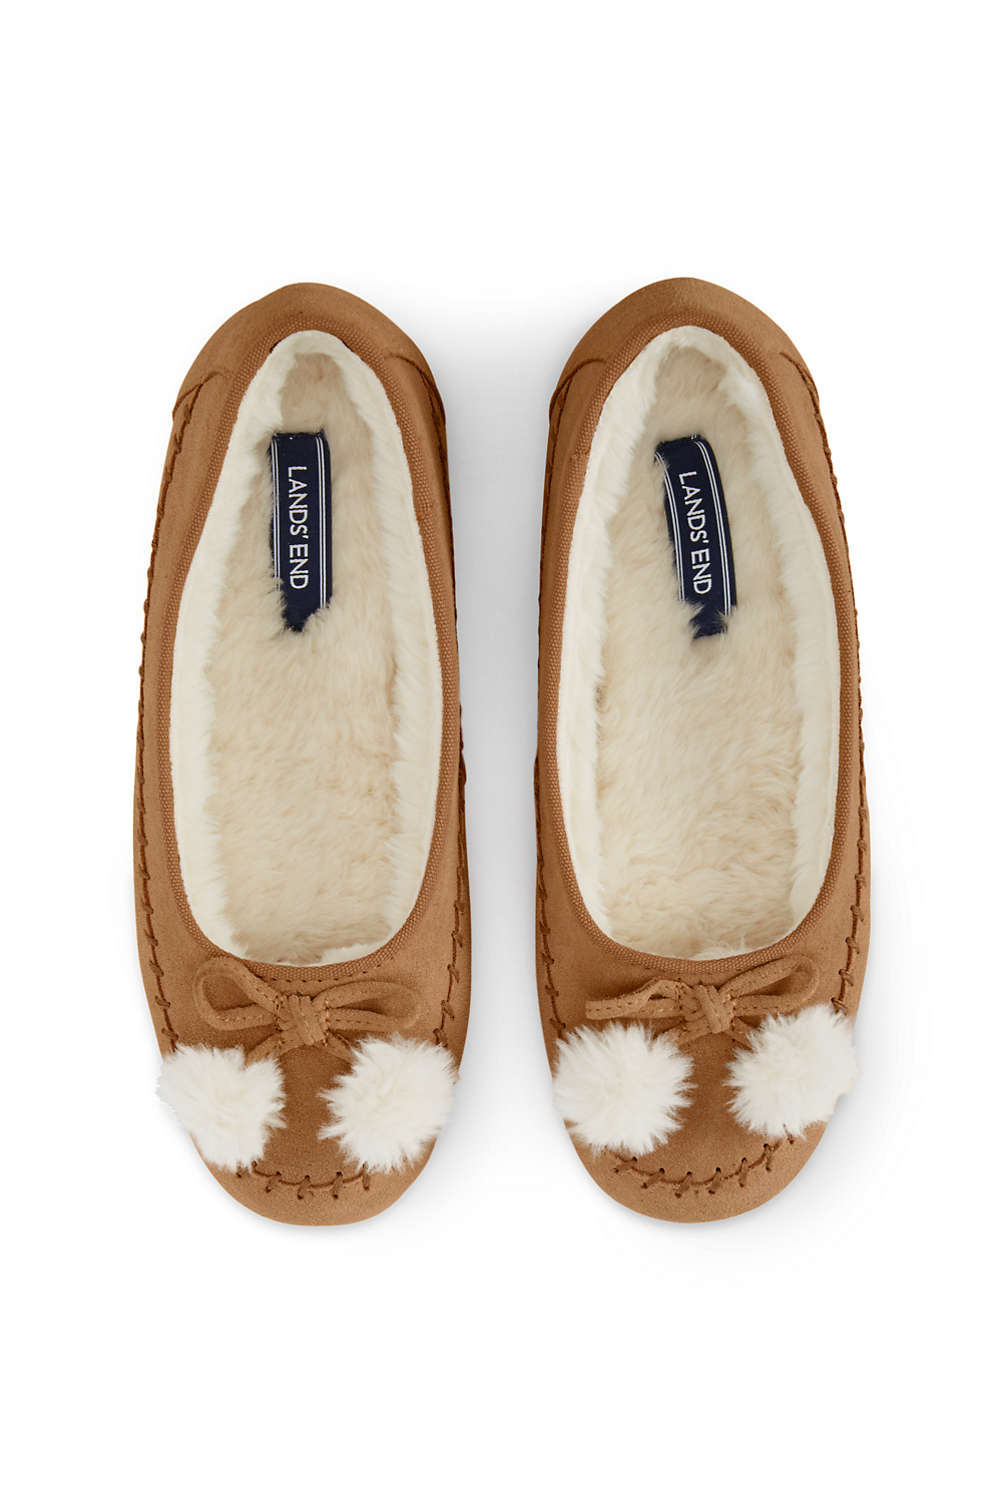 24fefe29fc6 Women s Suede Ballet Slippers from Lands  End